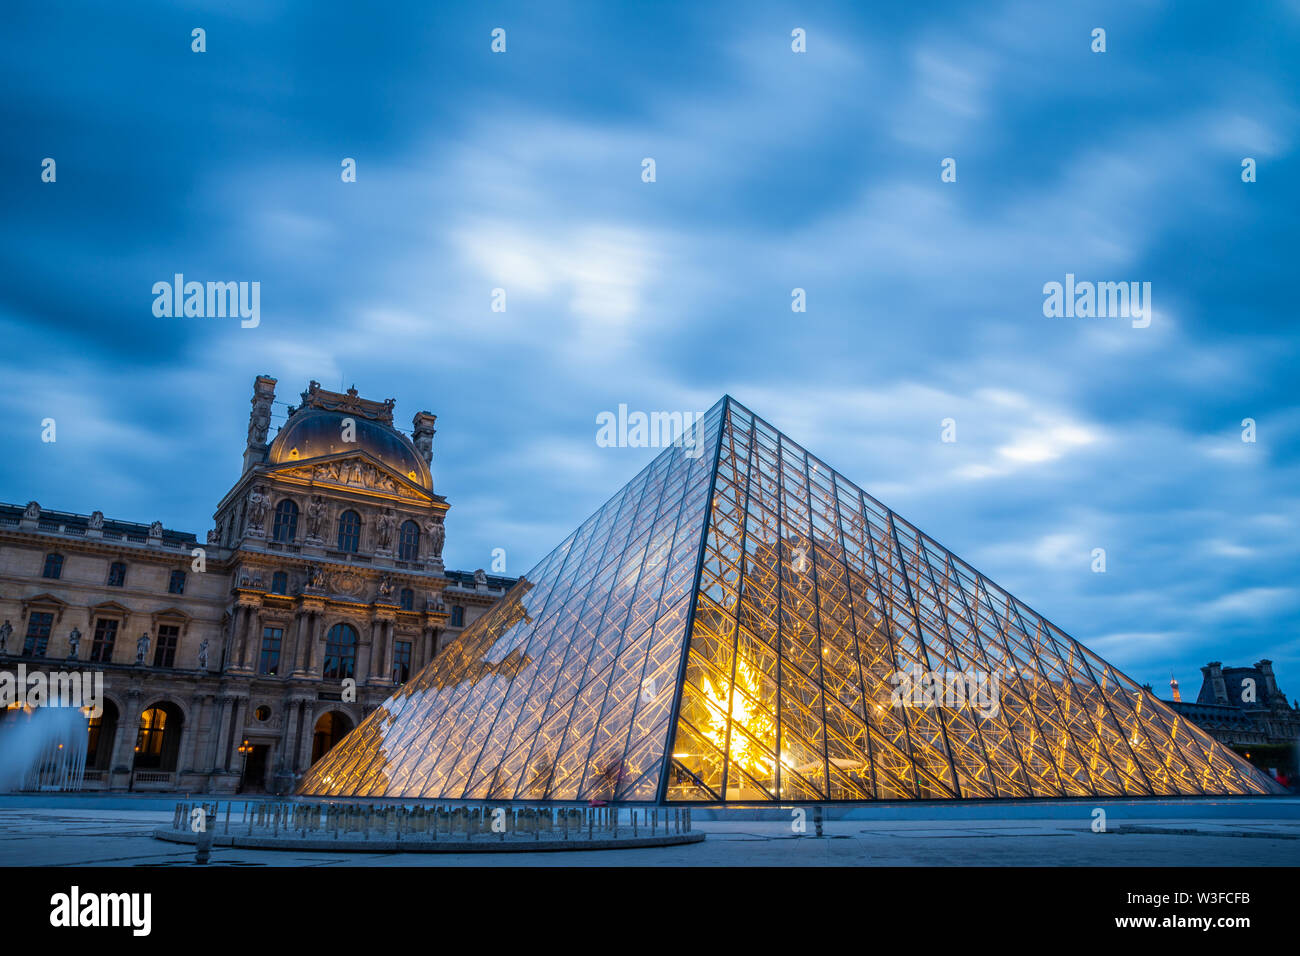 Paris, France - September 30, 2018: Iconic glass pyramid of Louvre museum with blurry motion of blue cloudy sky at sunset. - Stock Image